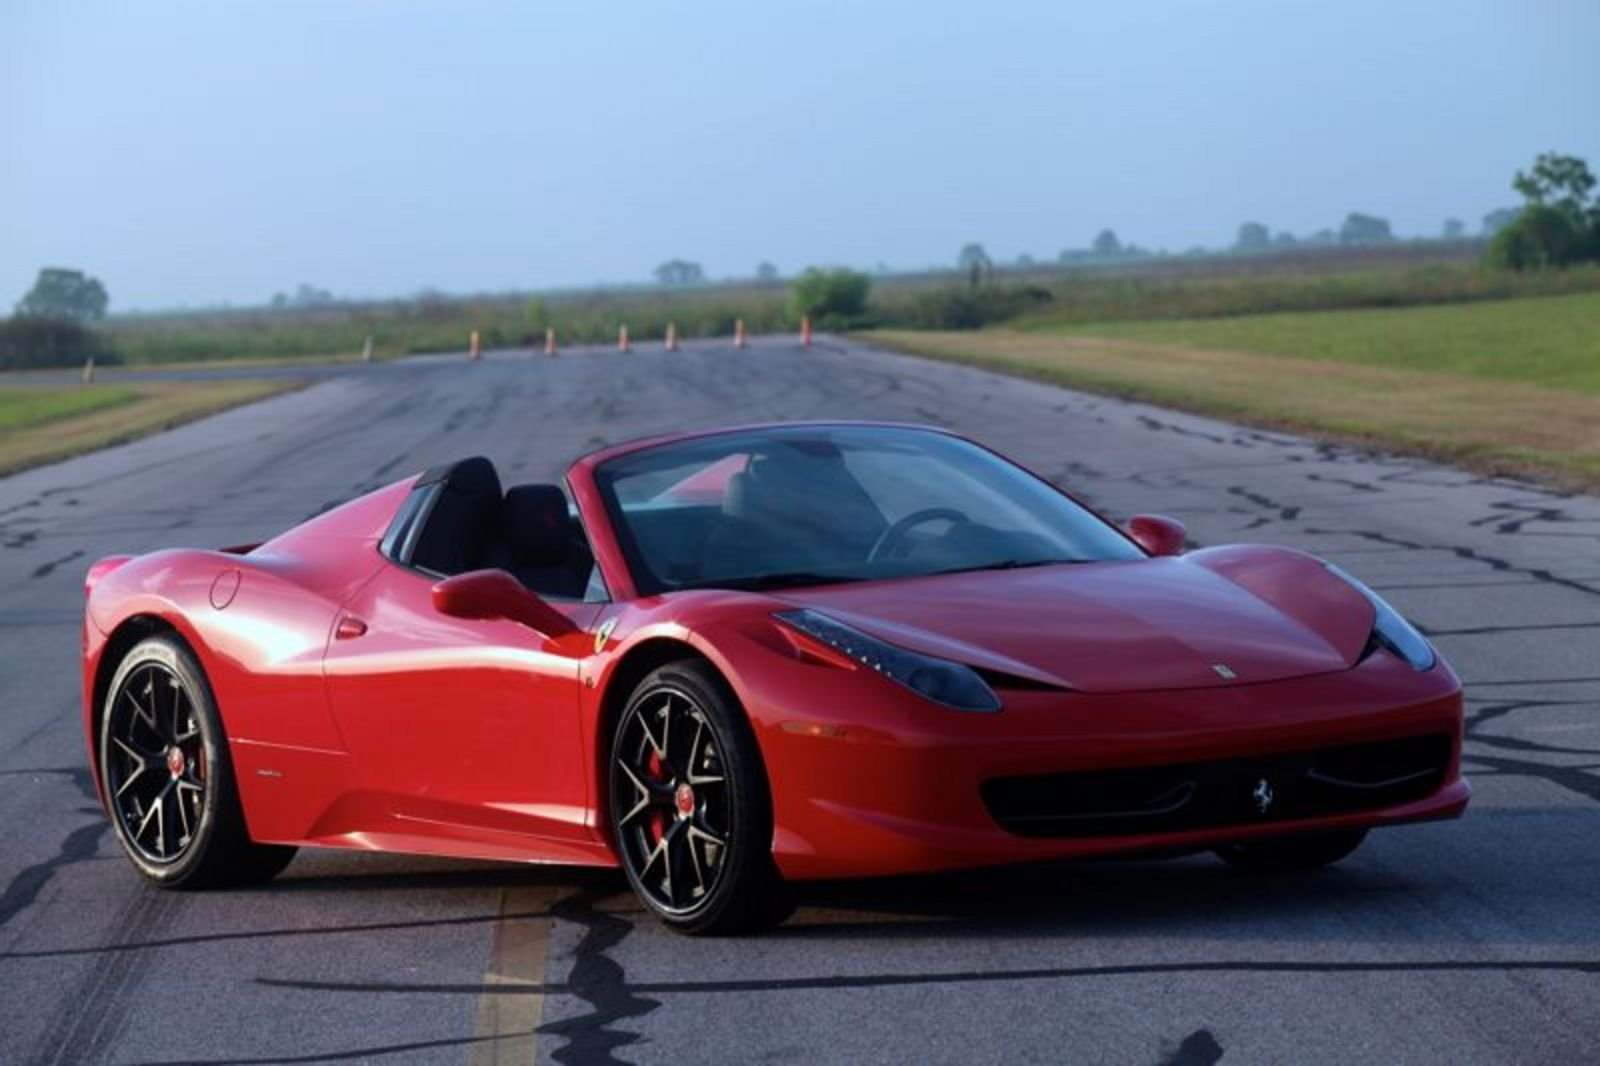 2013 Ferrari 458 Spider HPE700 By Hennessey Performance